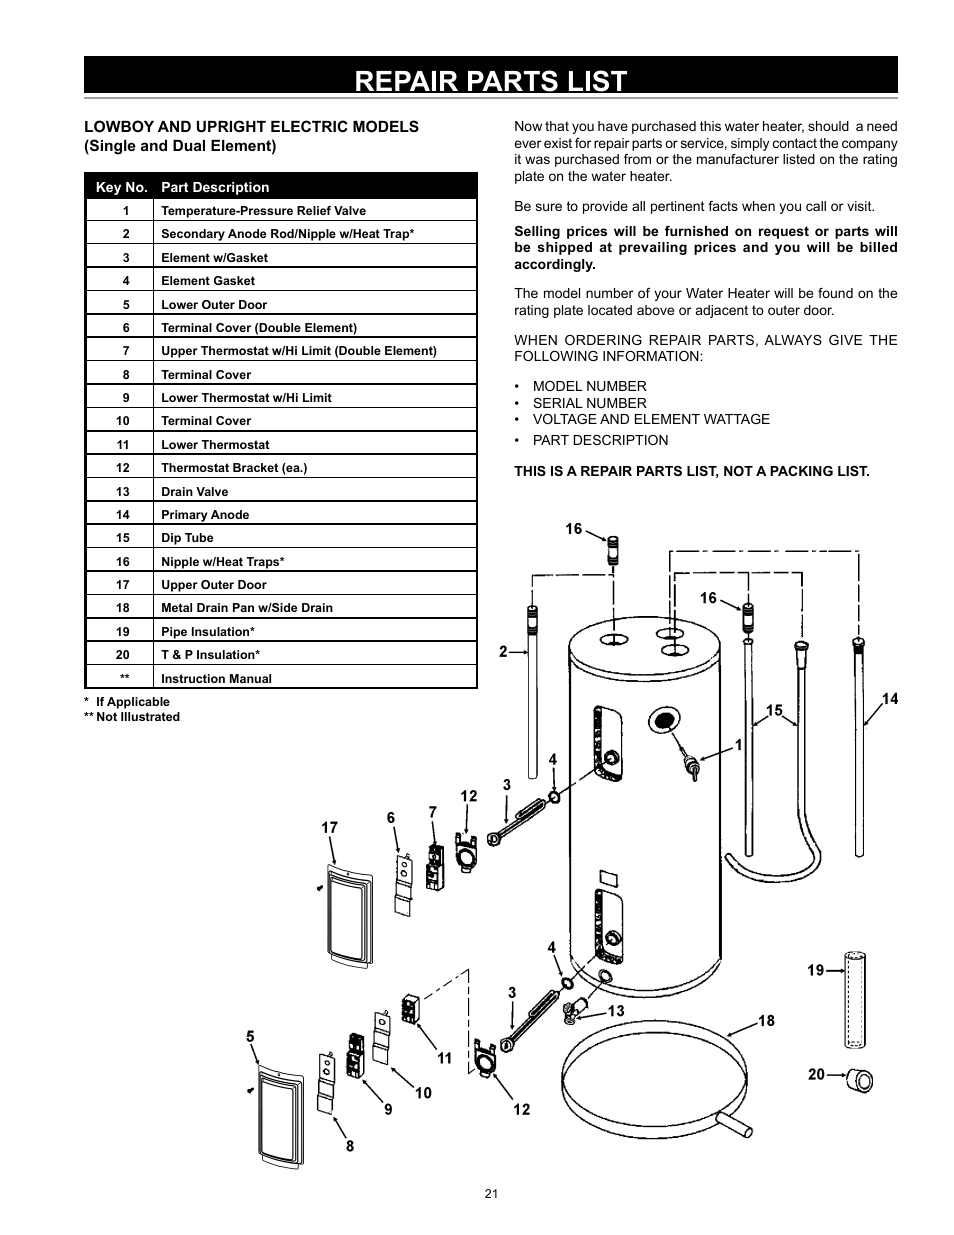 hight resolution of repair parts list john wood electric water heaters new user manual page 21 28